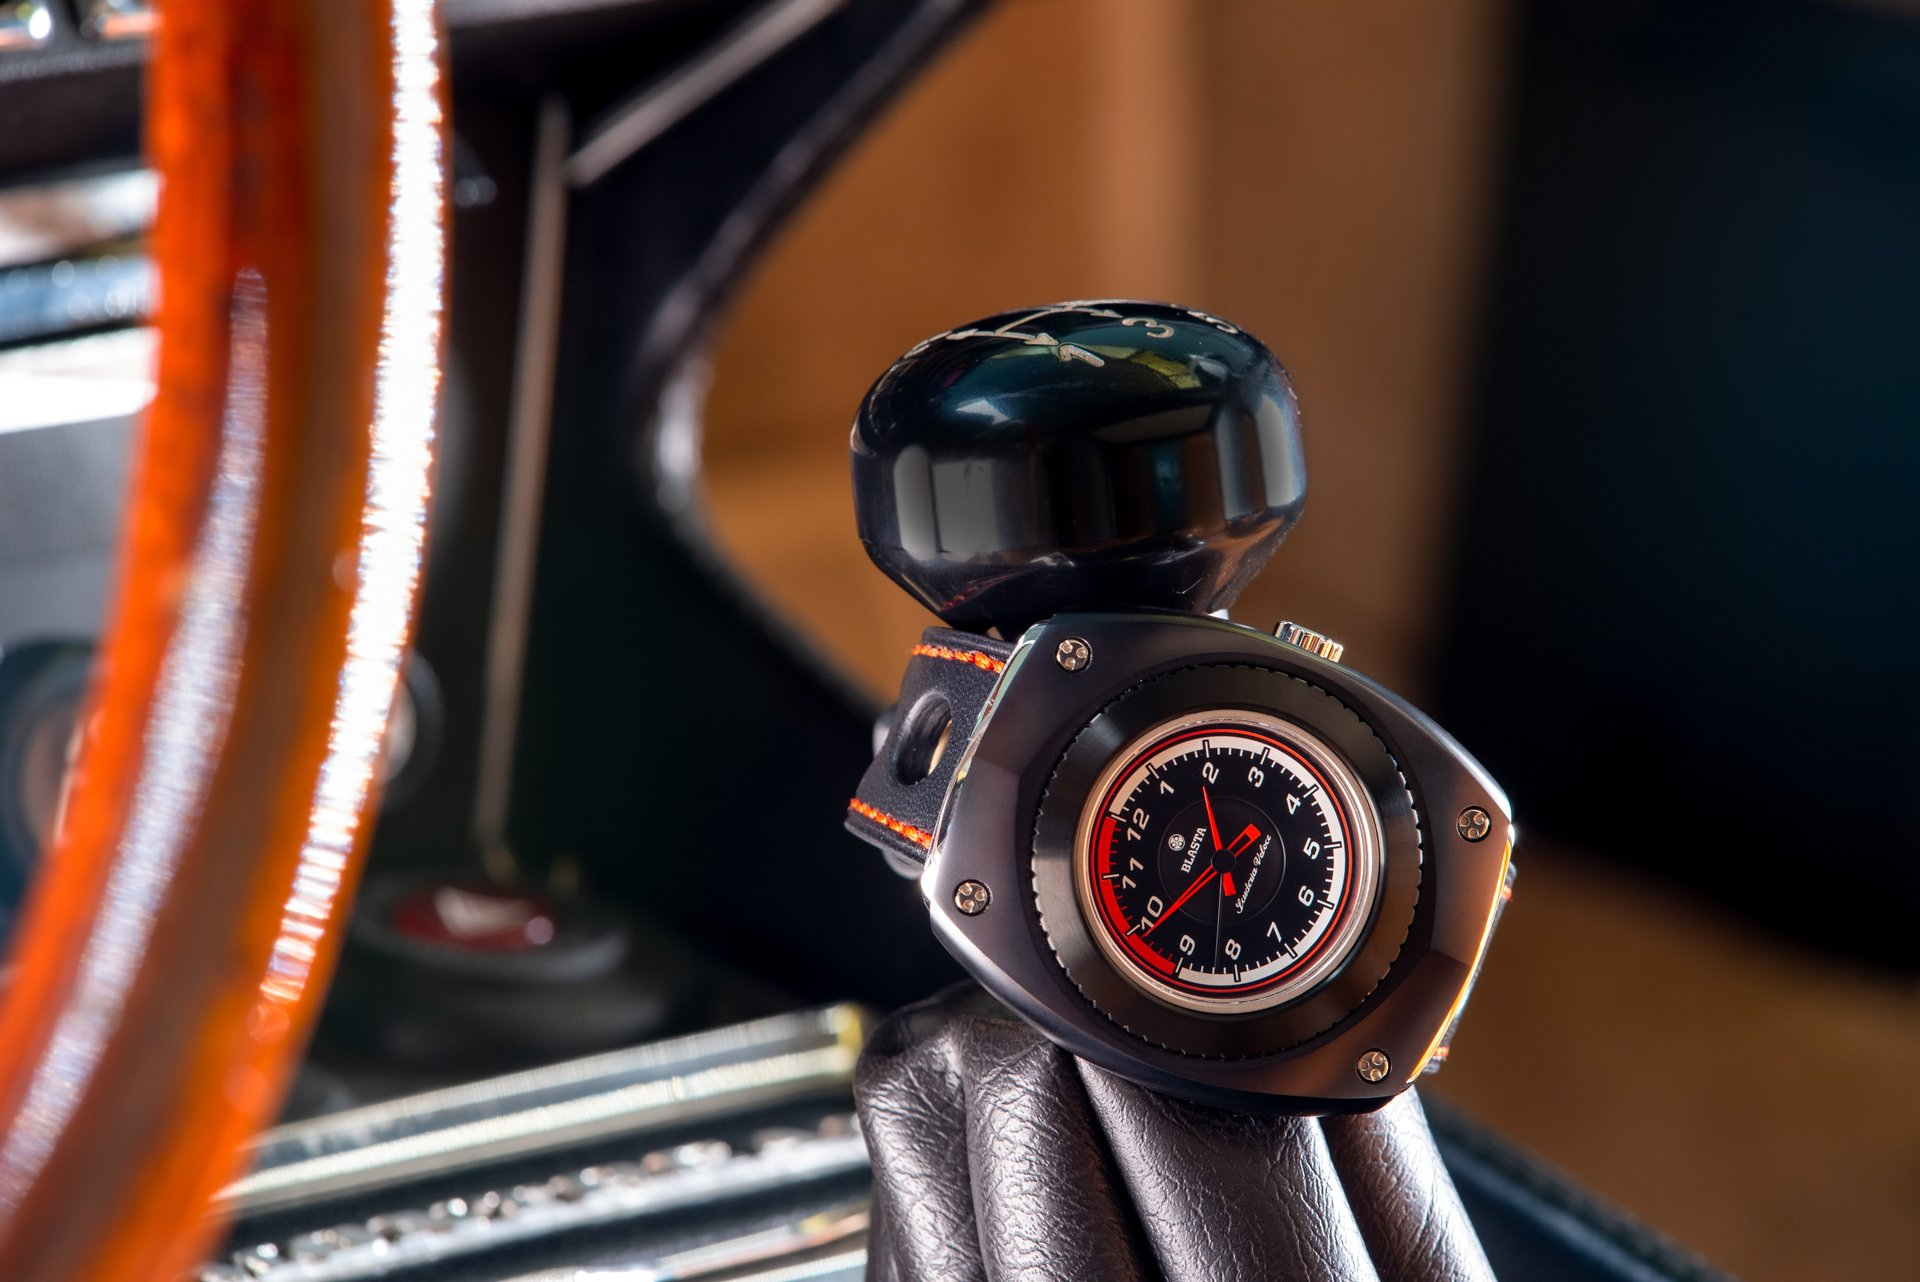 Blasta Watch Scuderia Veloce, nero profondo Photo taken on the gar lever of a Alfa Romeo Montreal.